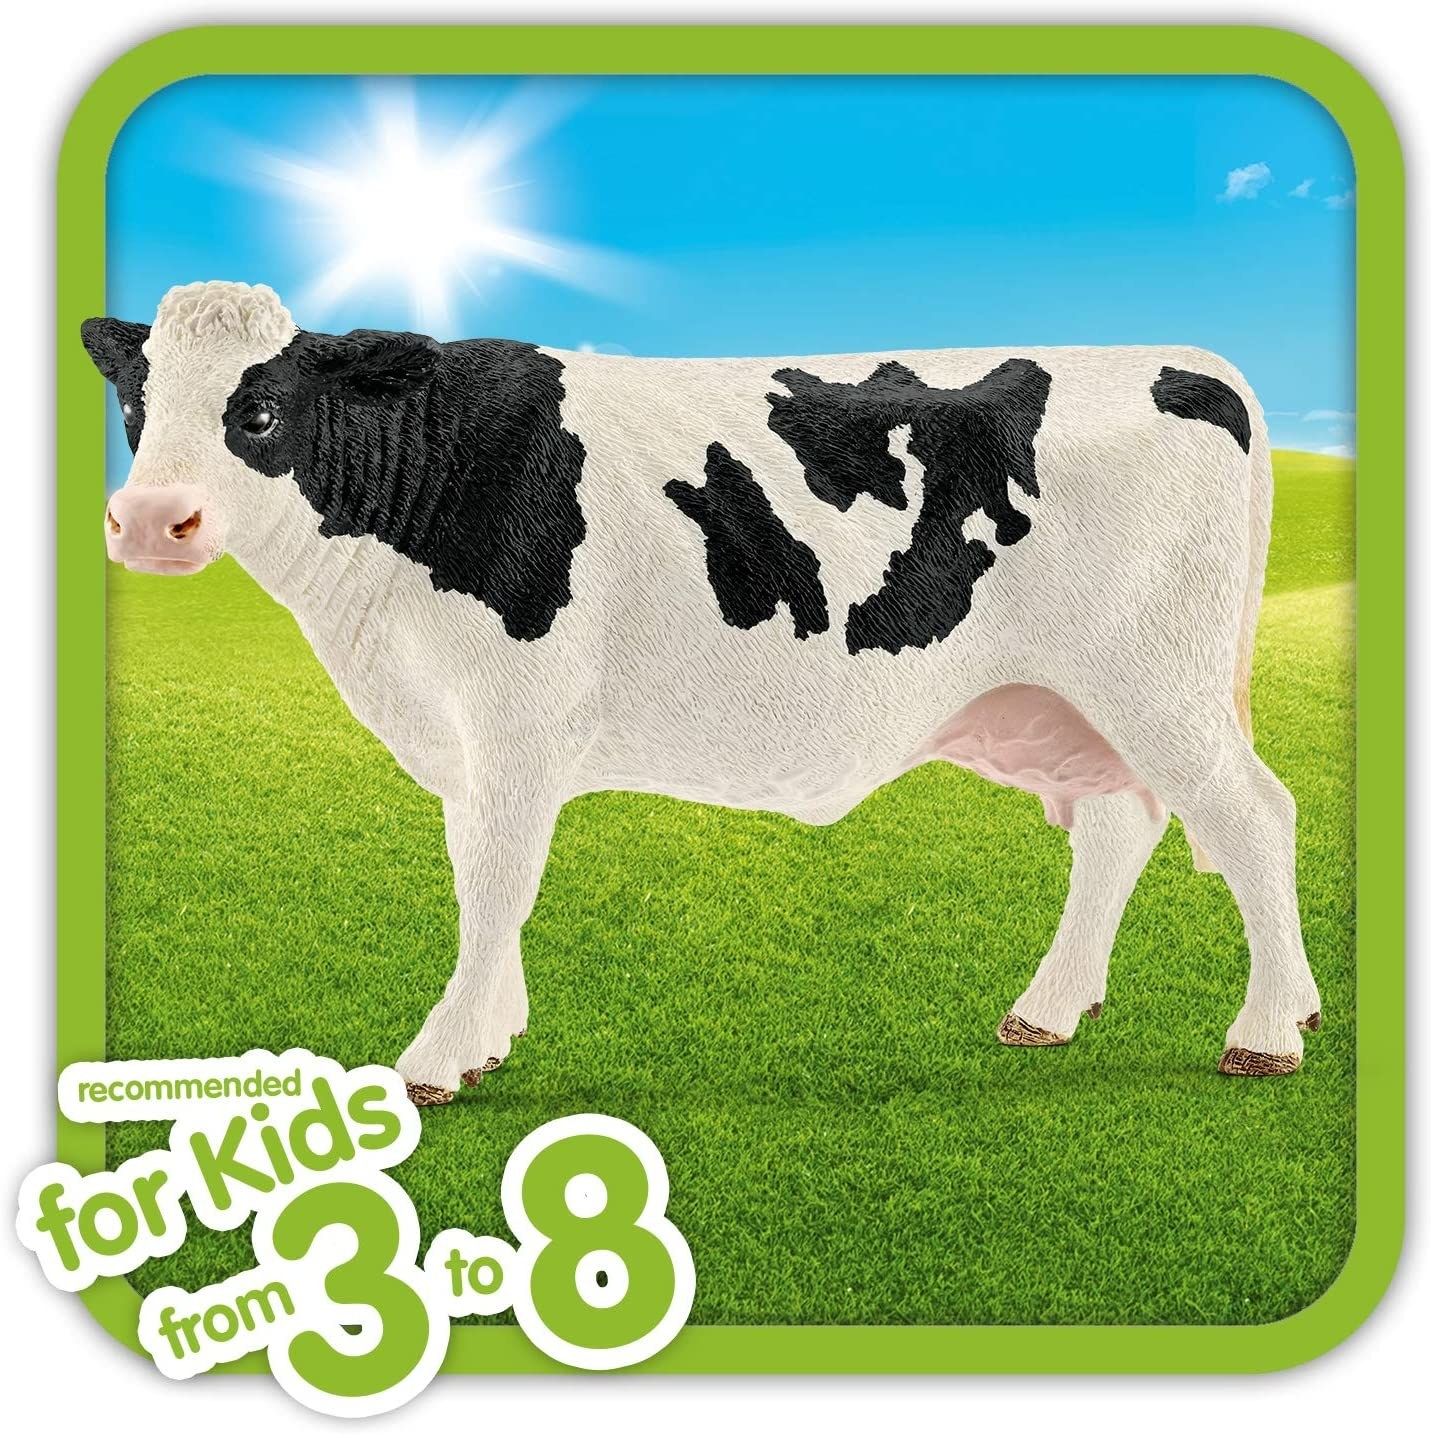 The white and black cow